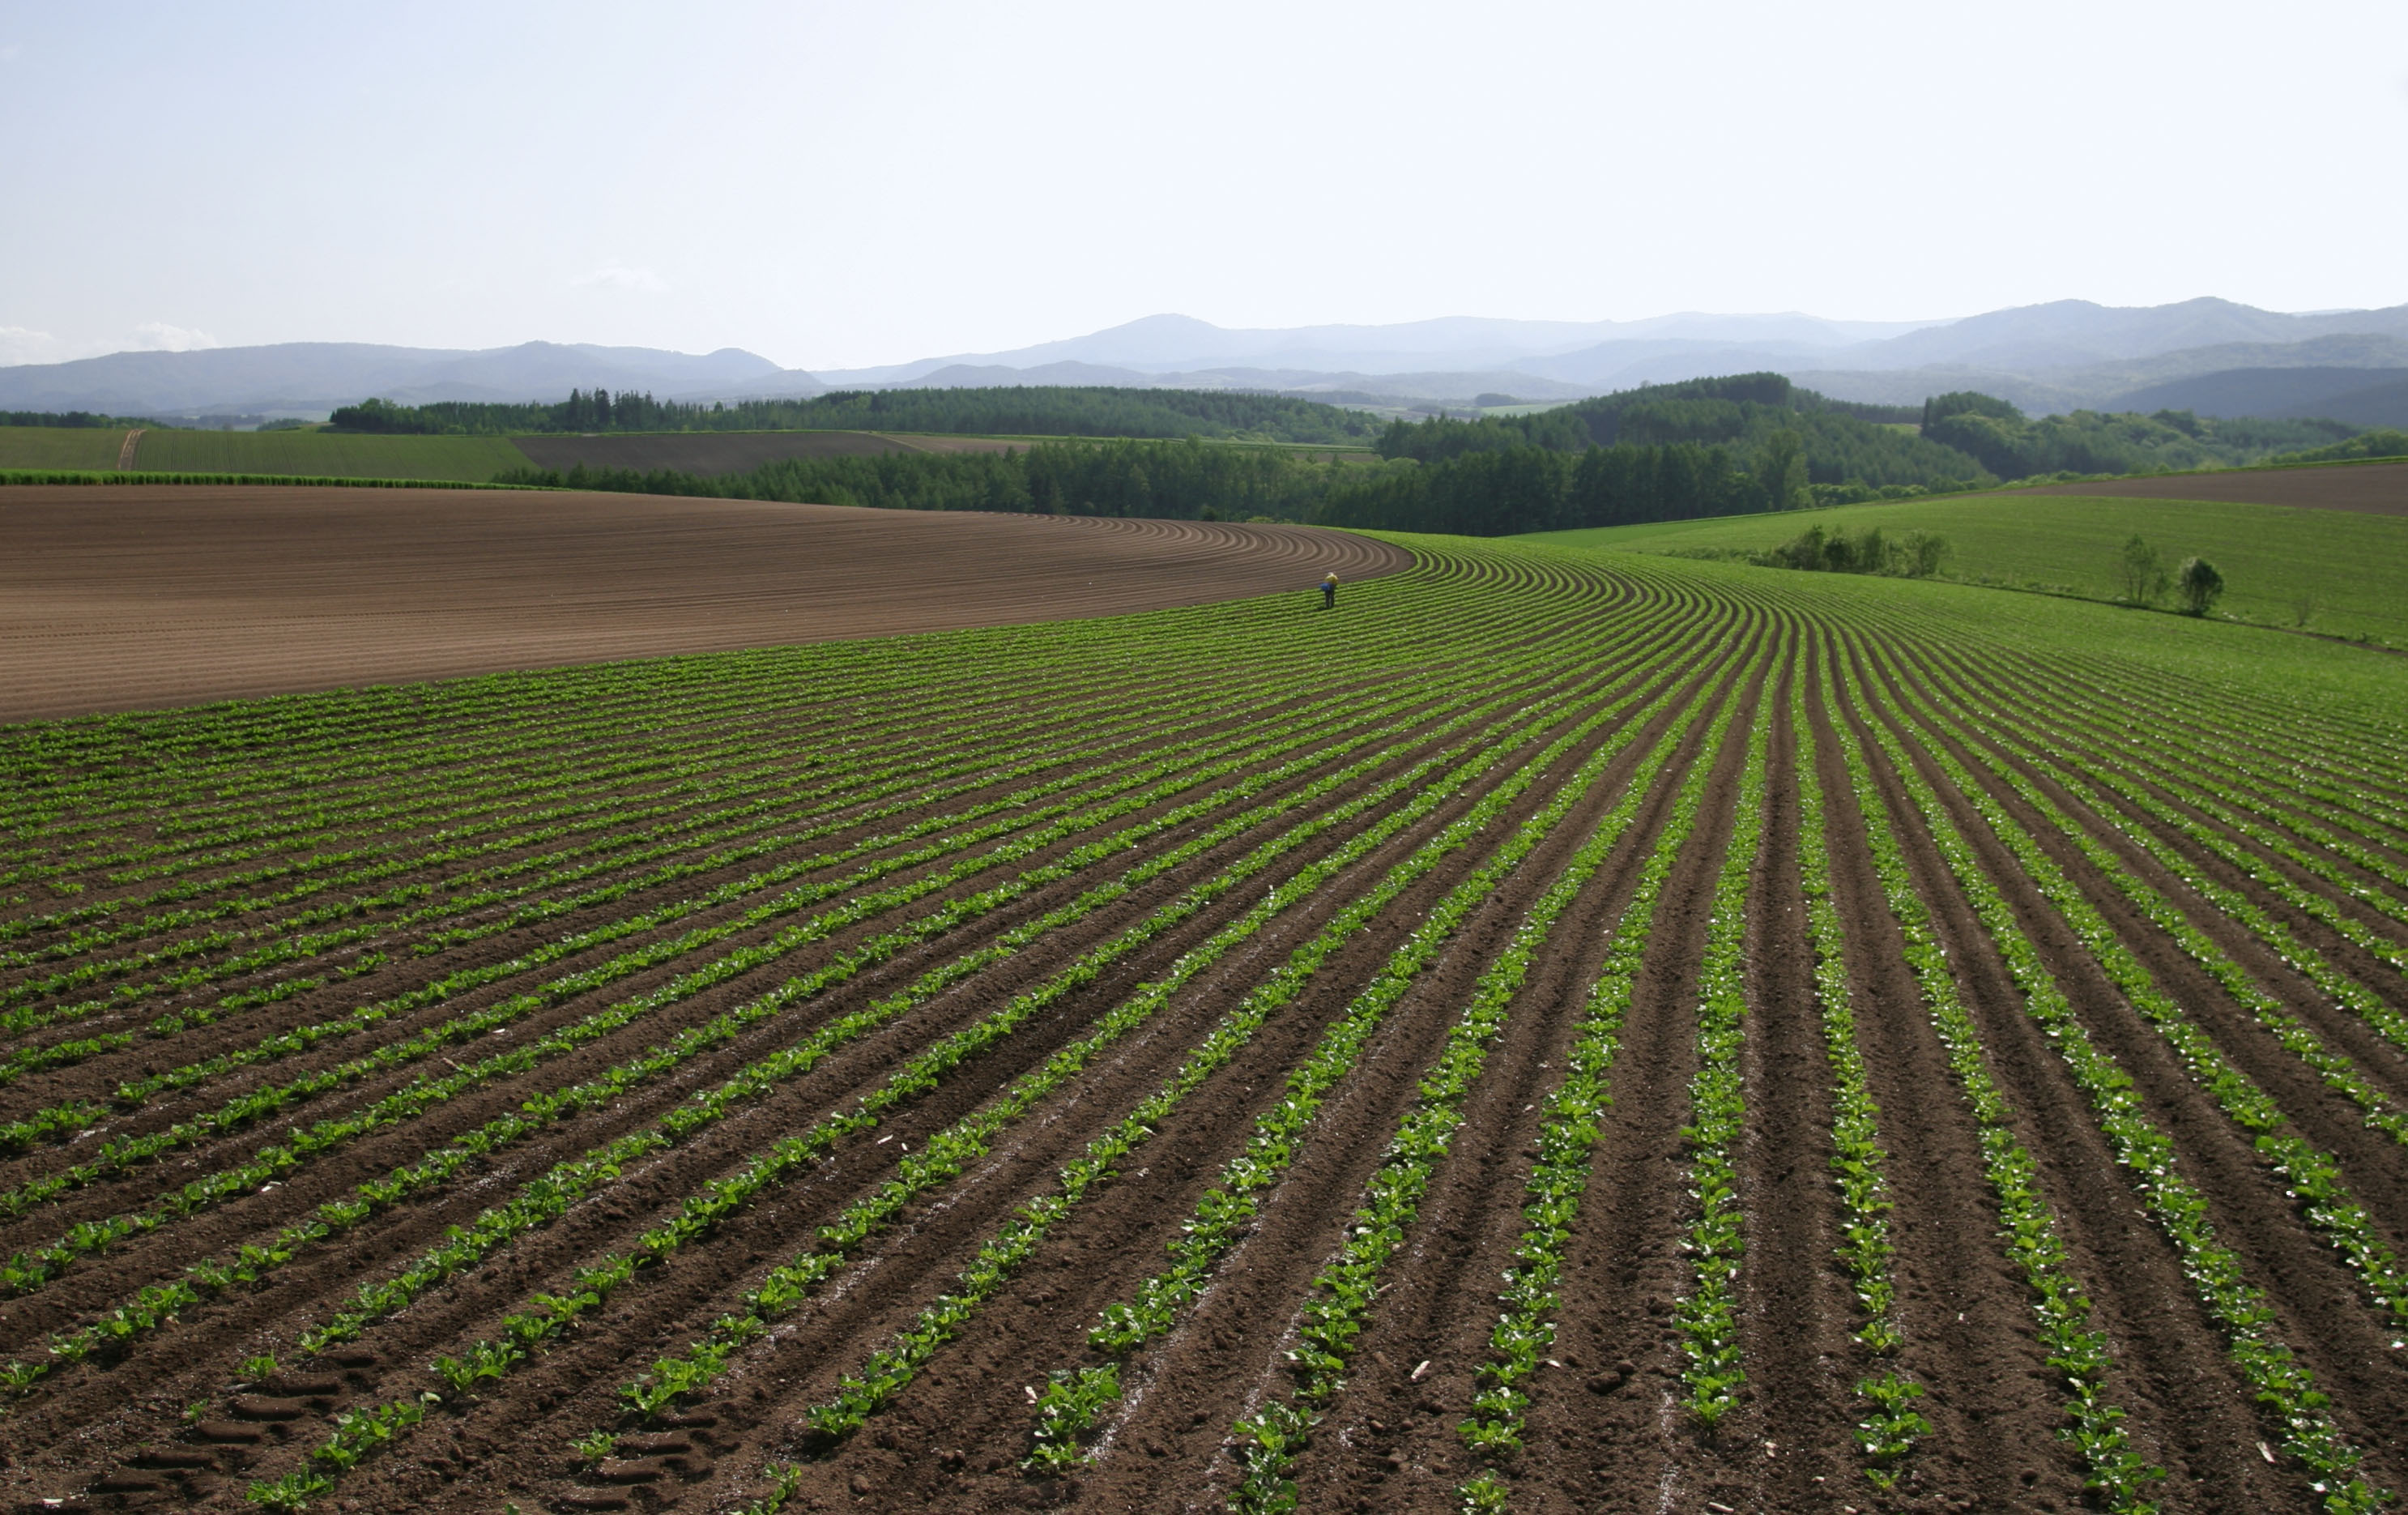 photo,material,free,landscape,picture,stock photo,Creative Commons,Extending lines, field, ridge, planting,